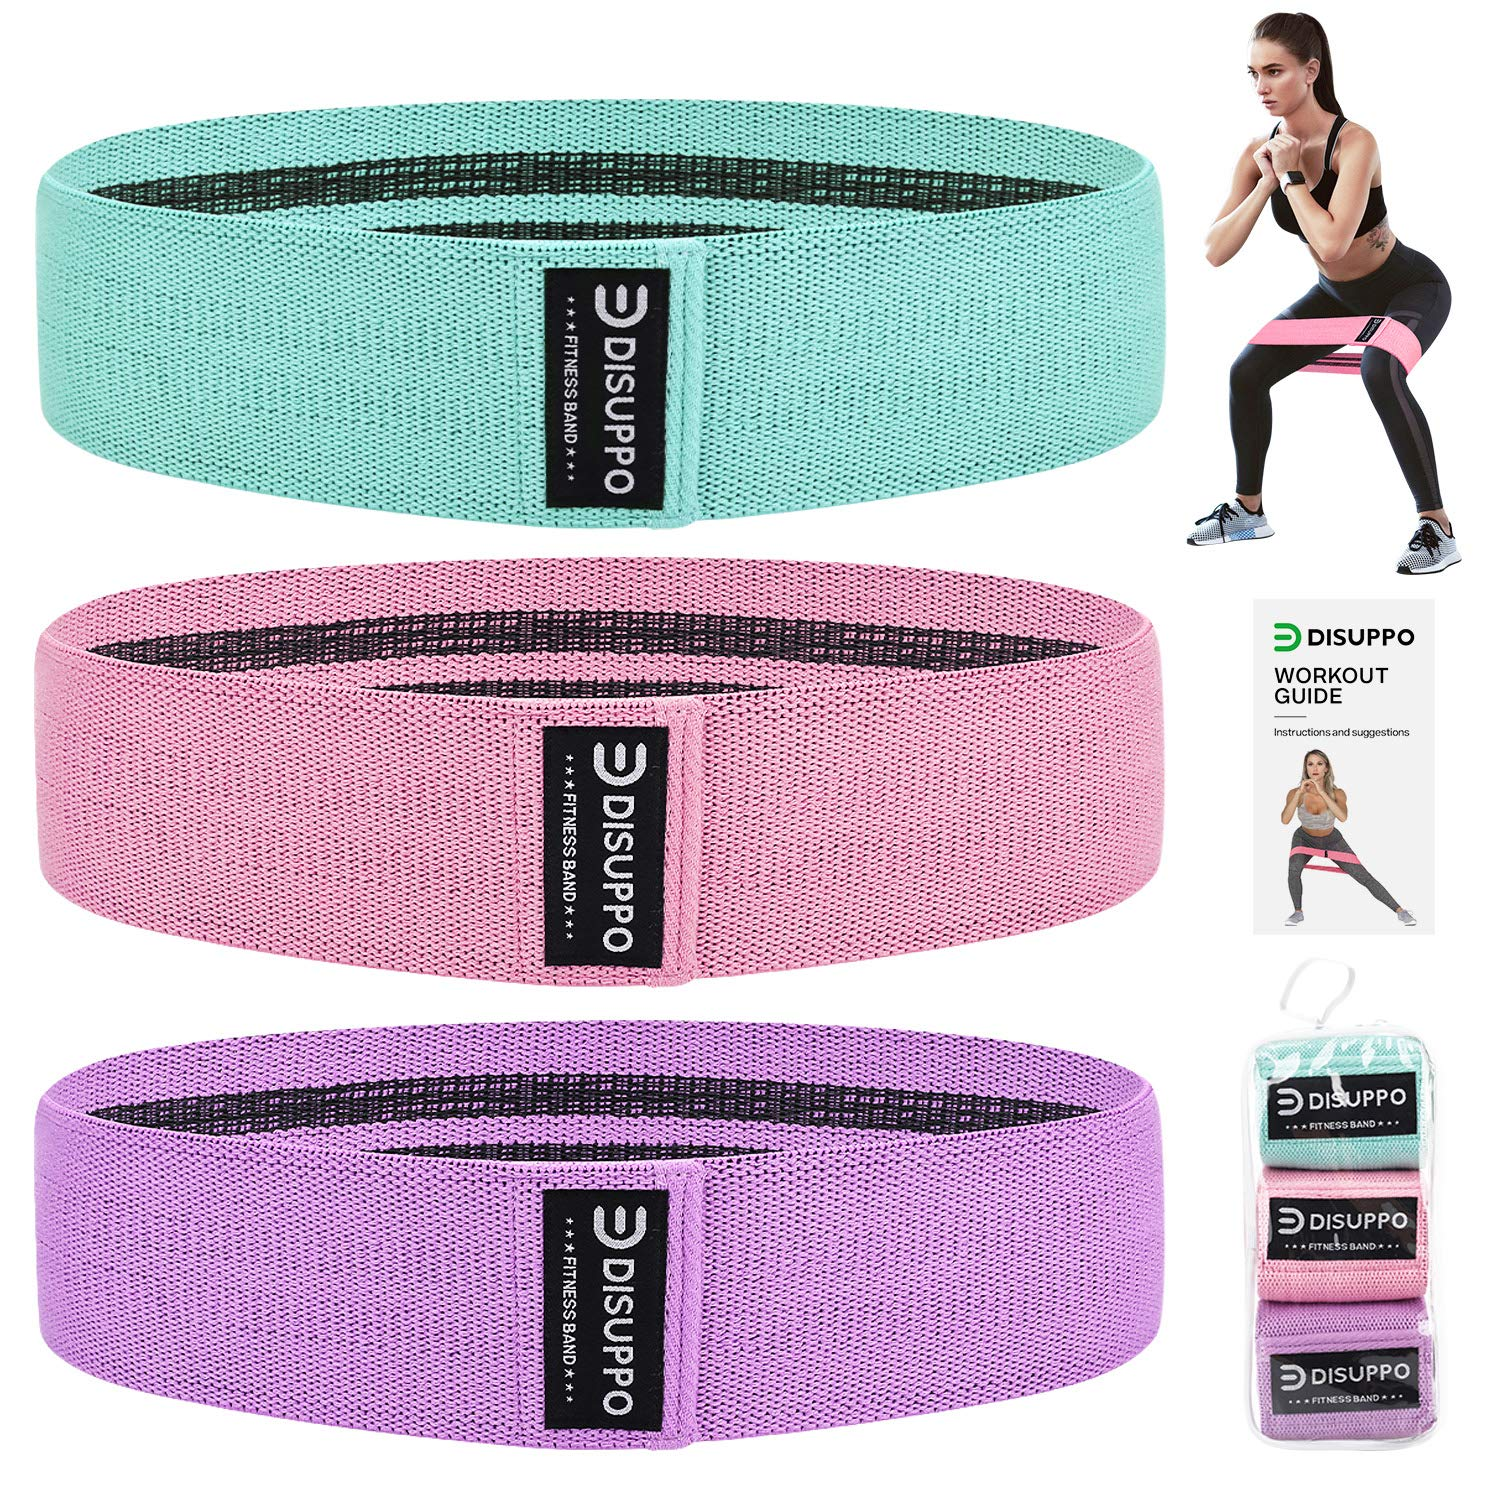 DISUPPO Resistance Bands for Legs and Butt, Workout Hip Bands High Exercise Bands Wide Booty Bands, Fabric Fitness Loop Bands for Body Stretching, Yoga, Pilates